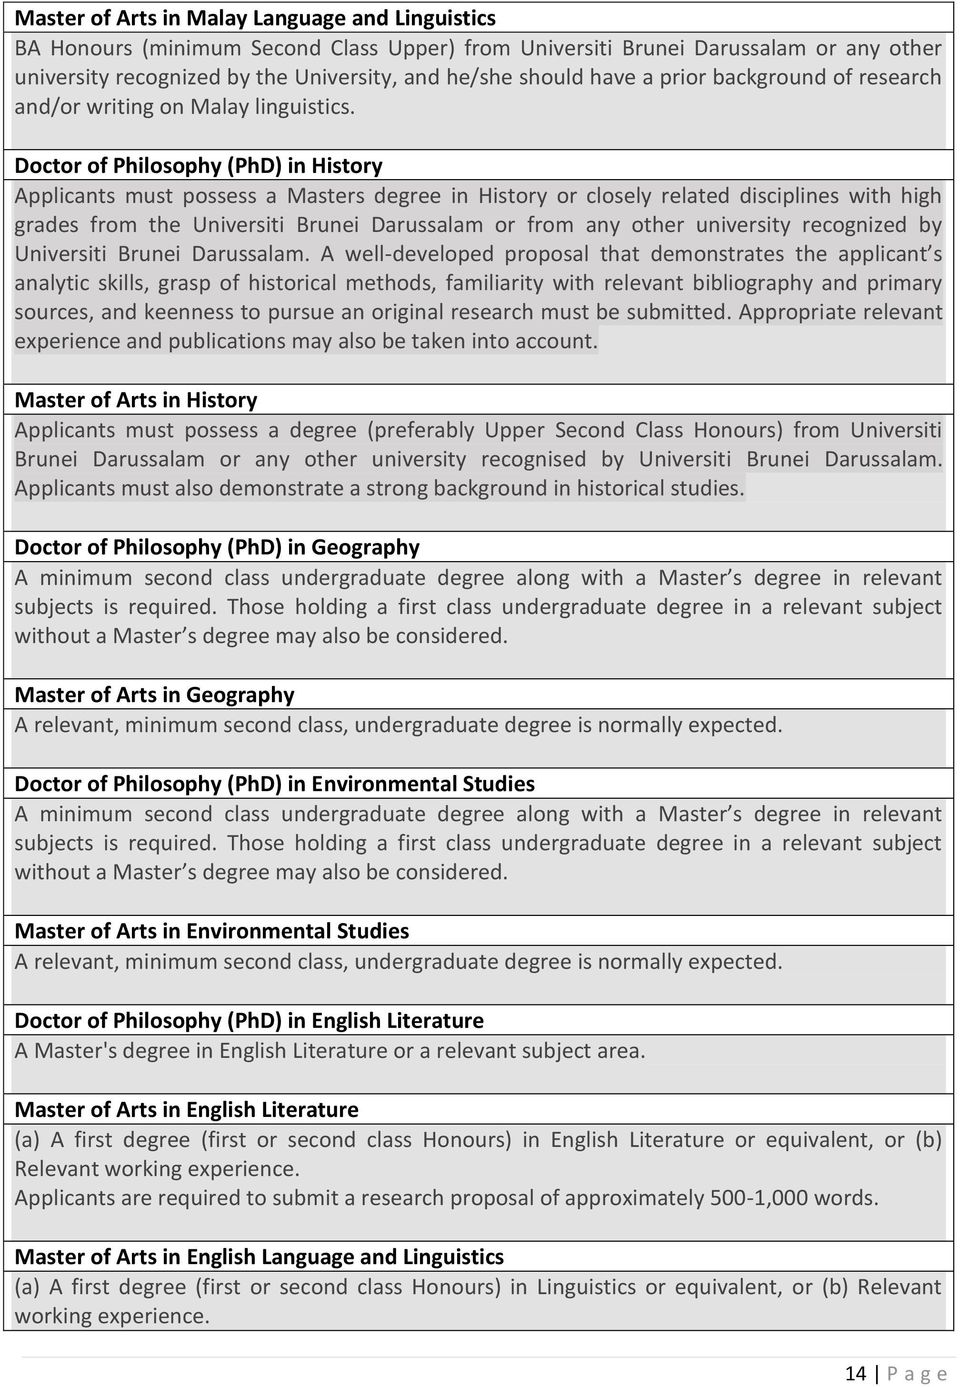 Doctor of Philosophy (PhD) in History Applicants must possess a Masters degree in History or closely related disciplines with high grades from the Universiti Brunei Darussalam or from any other